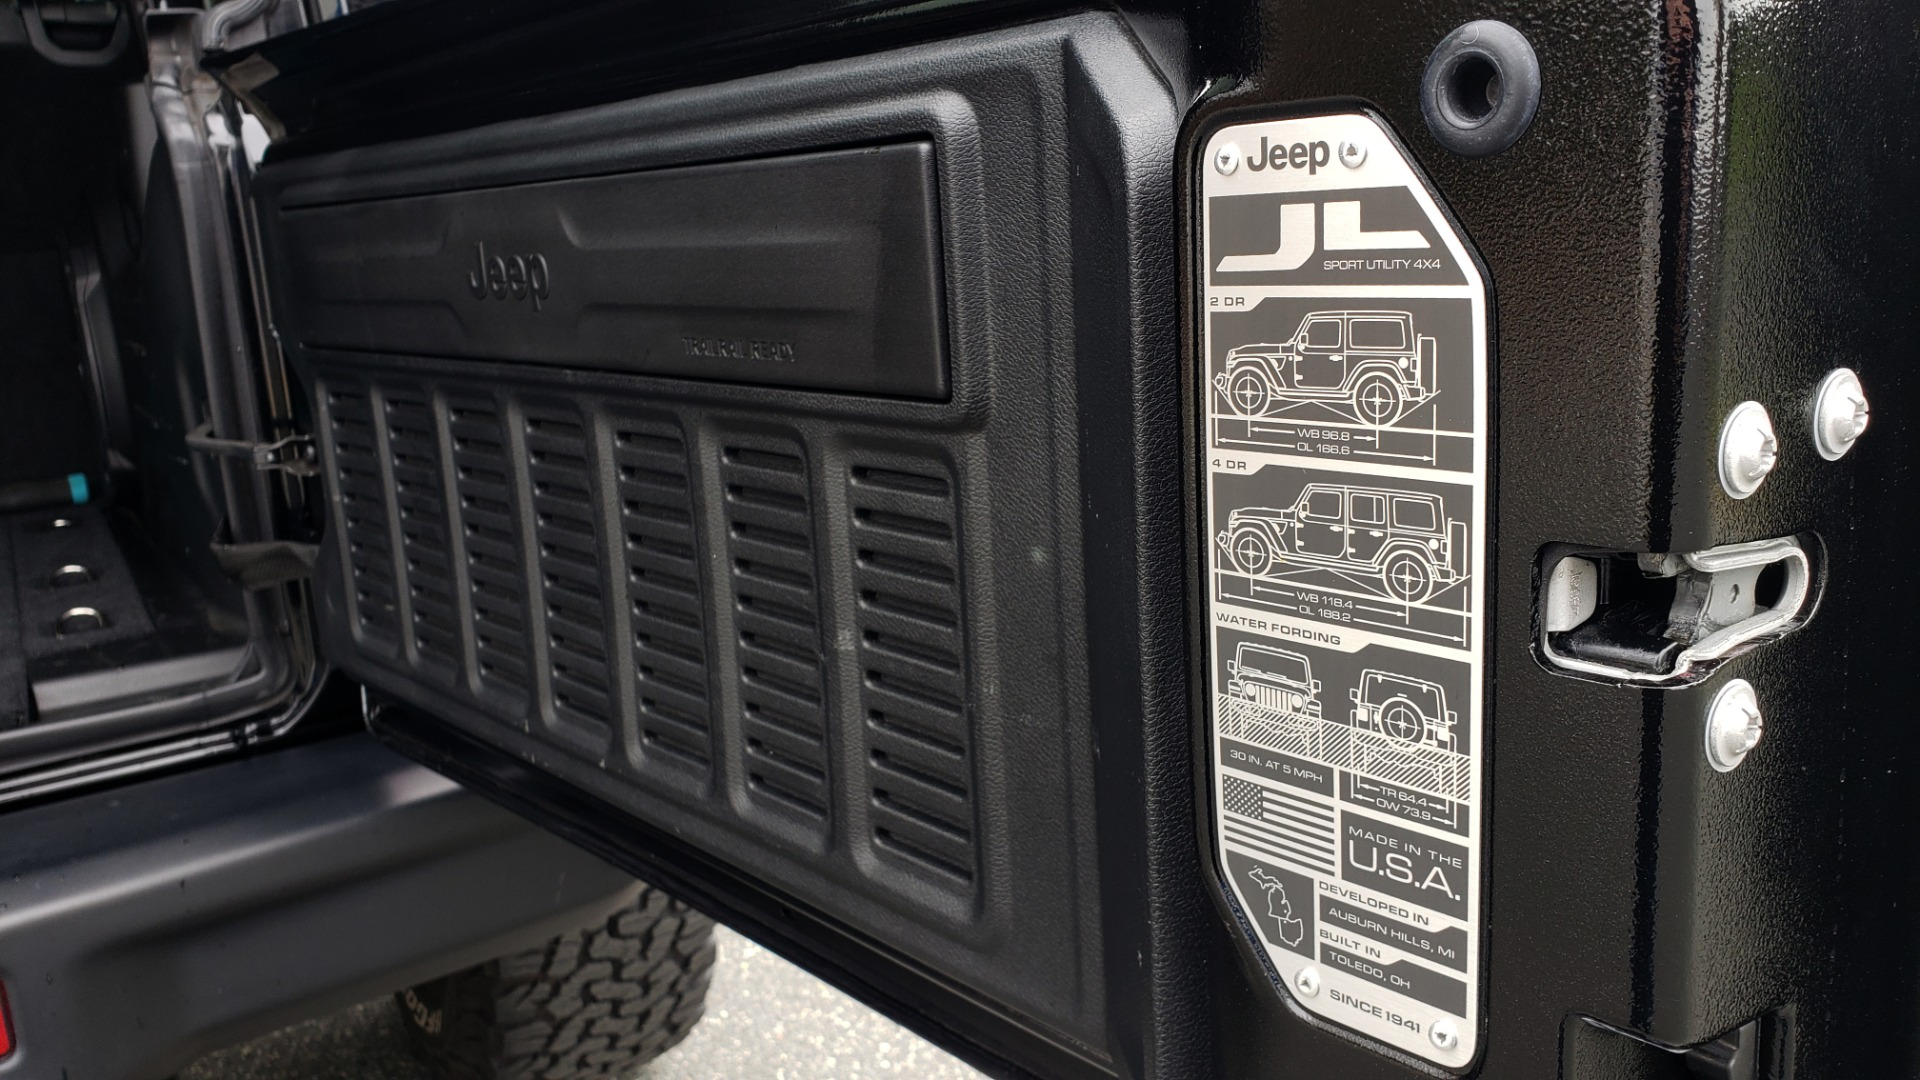 Used 2019 Jeep WRANGLER UNLIMITED RUBICON 4WD / V6 / 8-SPD AUTO / NAV / PWR TOP / REARVIEW for sale Sold at Formula Imports in Charlotte NC 28227 41